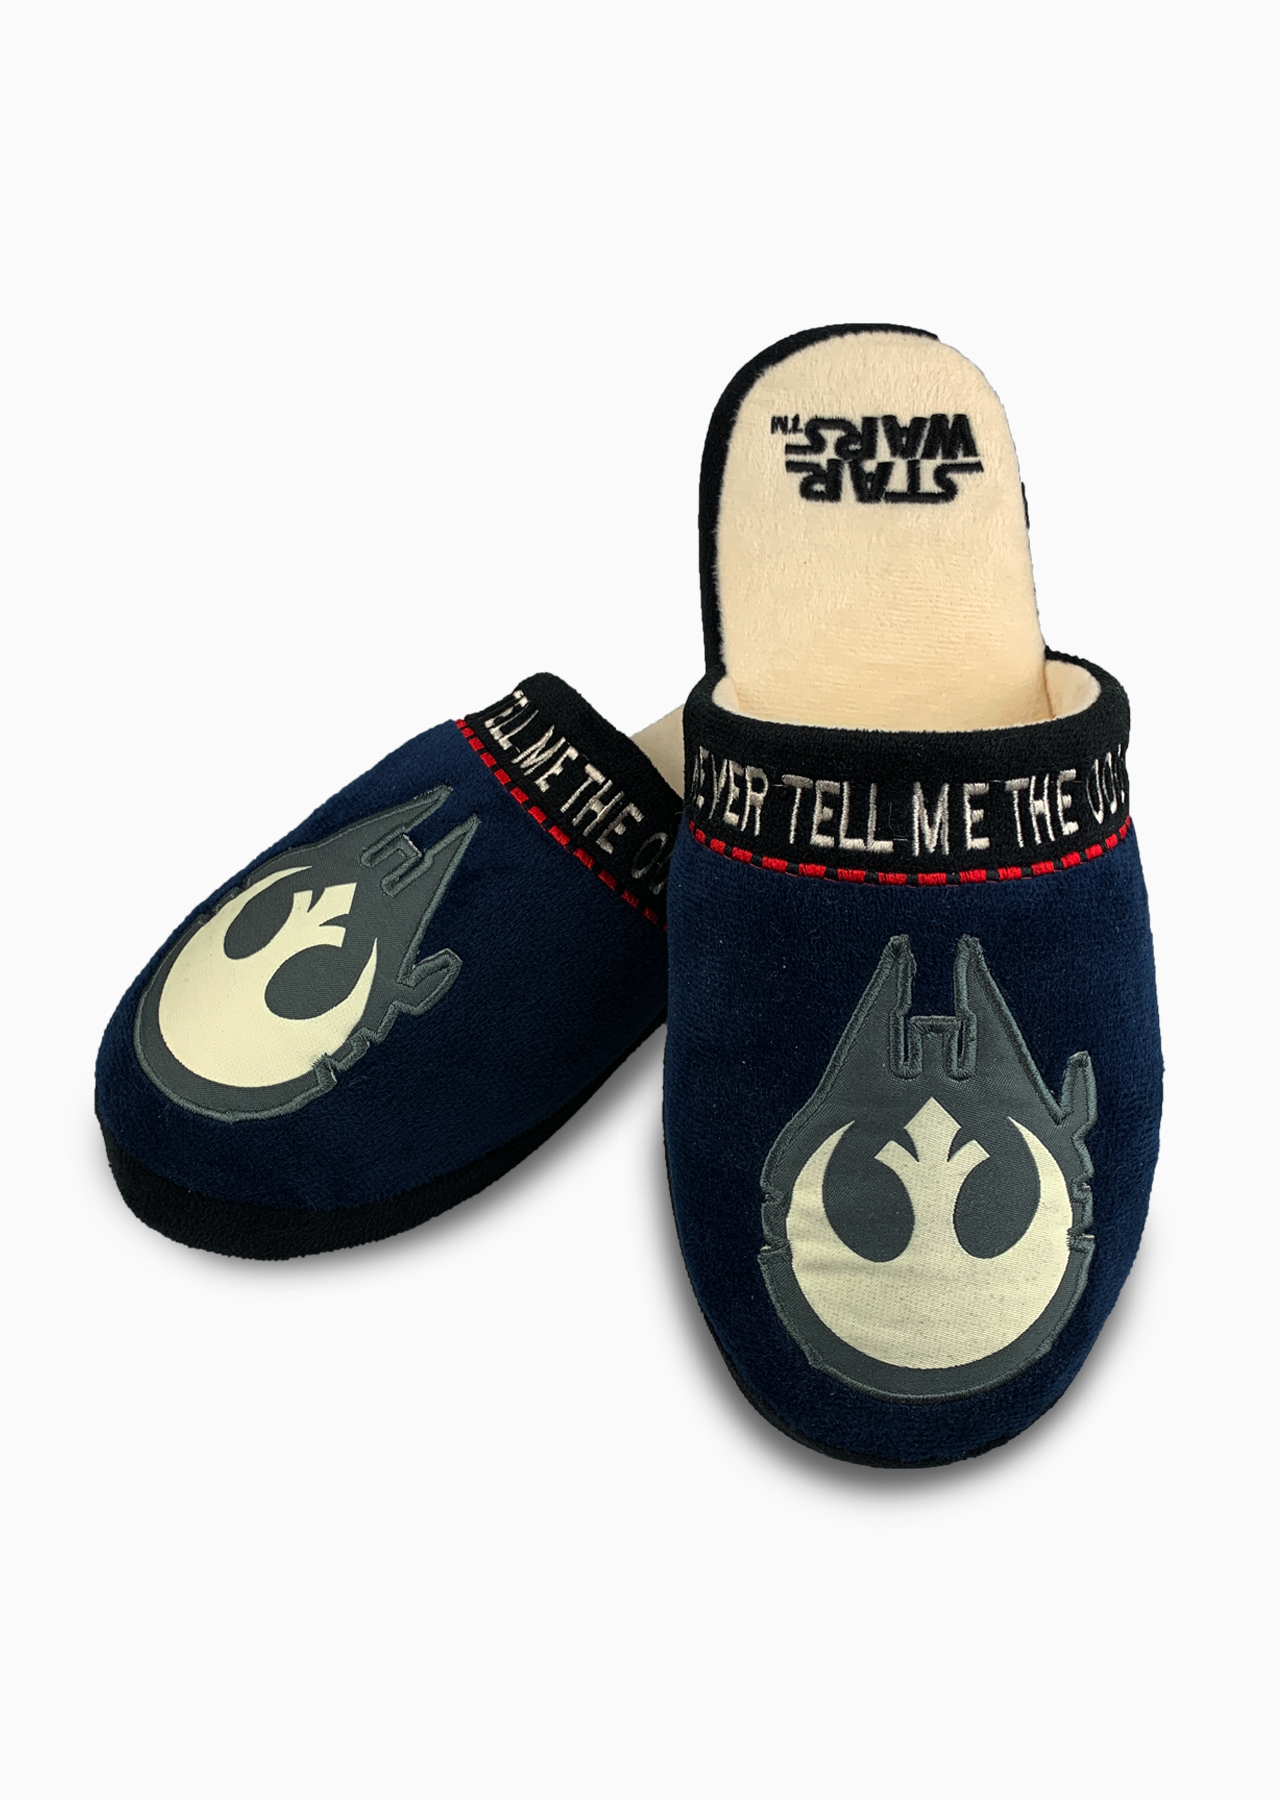 Official Star Wars Slippers Last Jedi Adult Slip On Mule Slippers Size 5-7